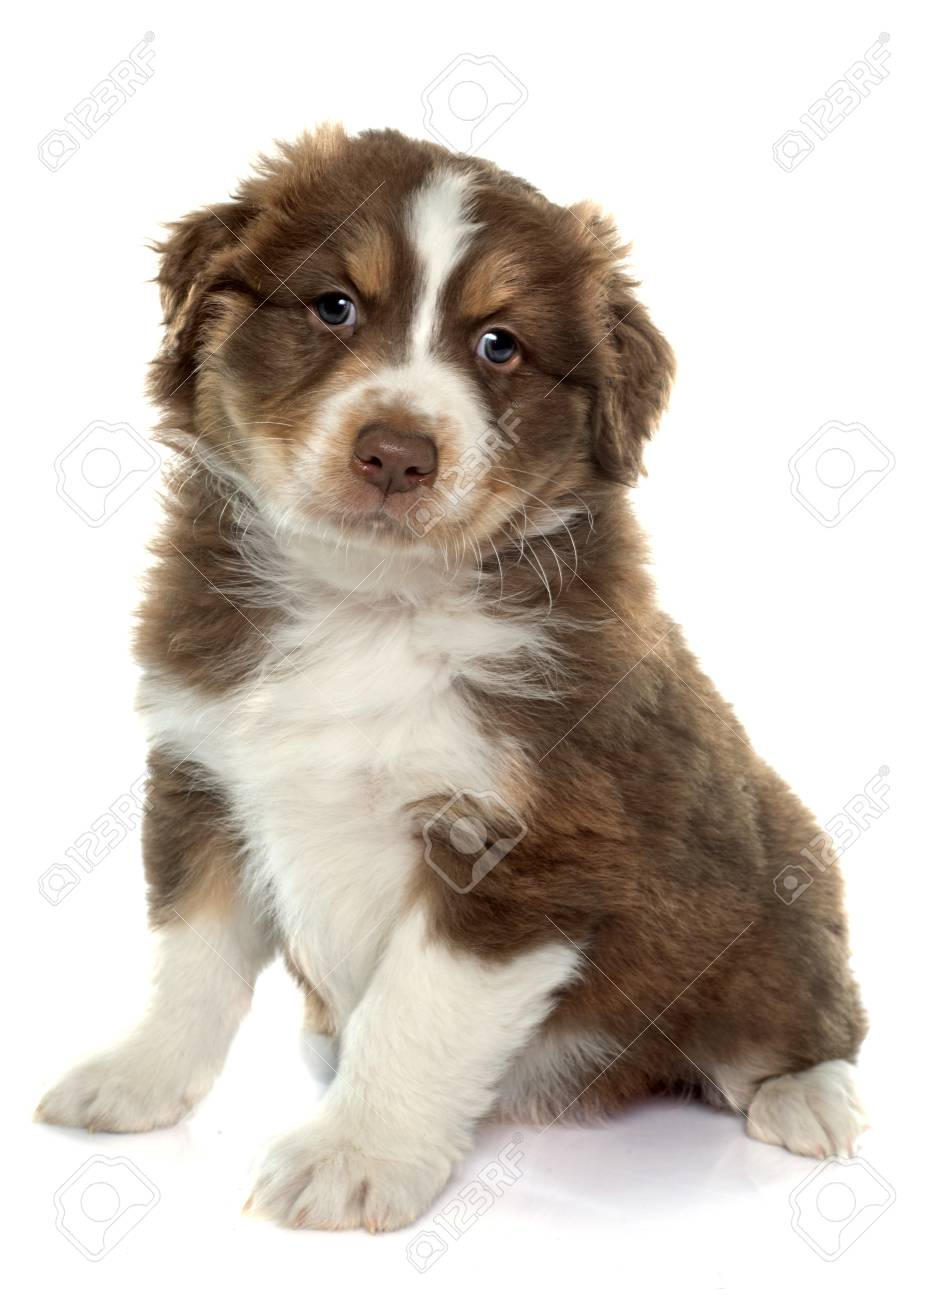 Puppy Australian Shepherd In Front Of White Background Stock Photo Picture And Royalty Free Image Image 50946066